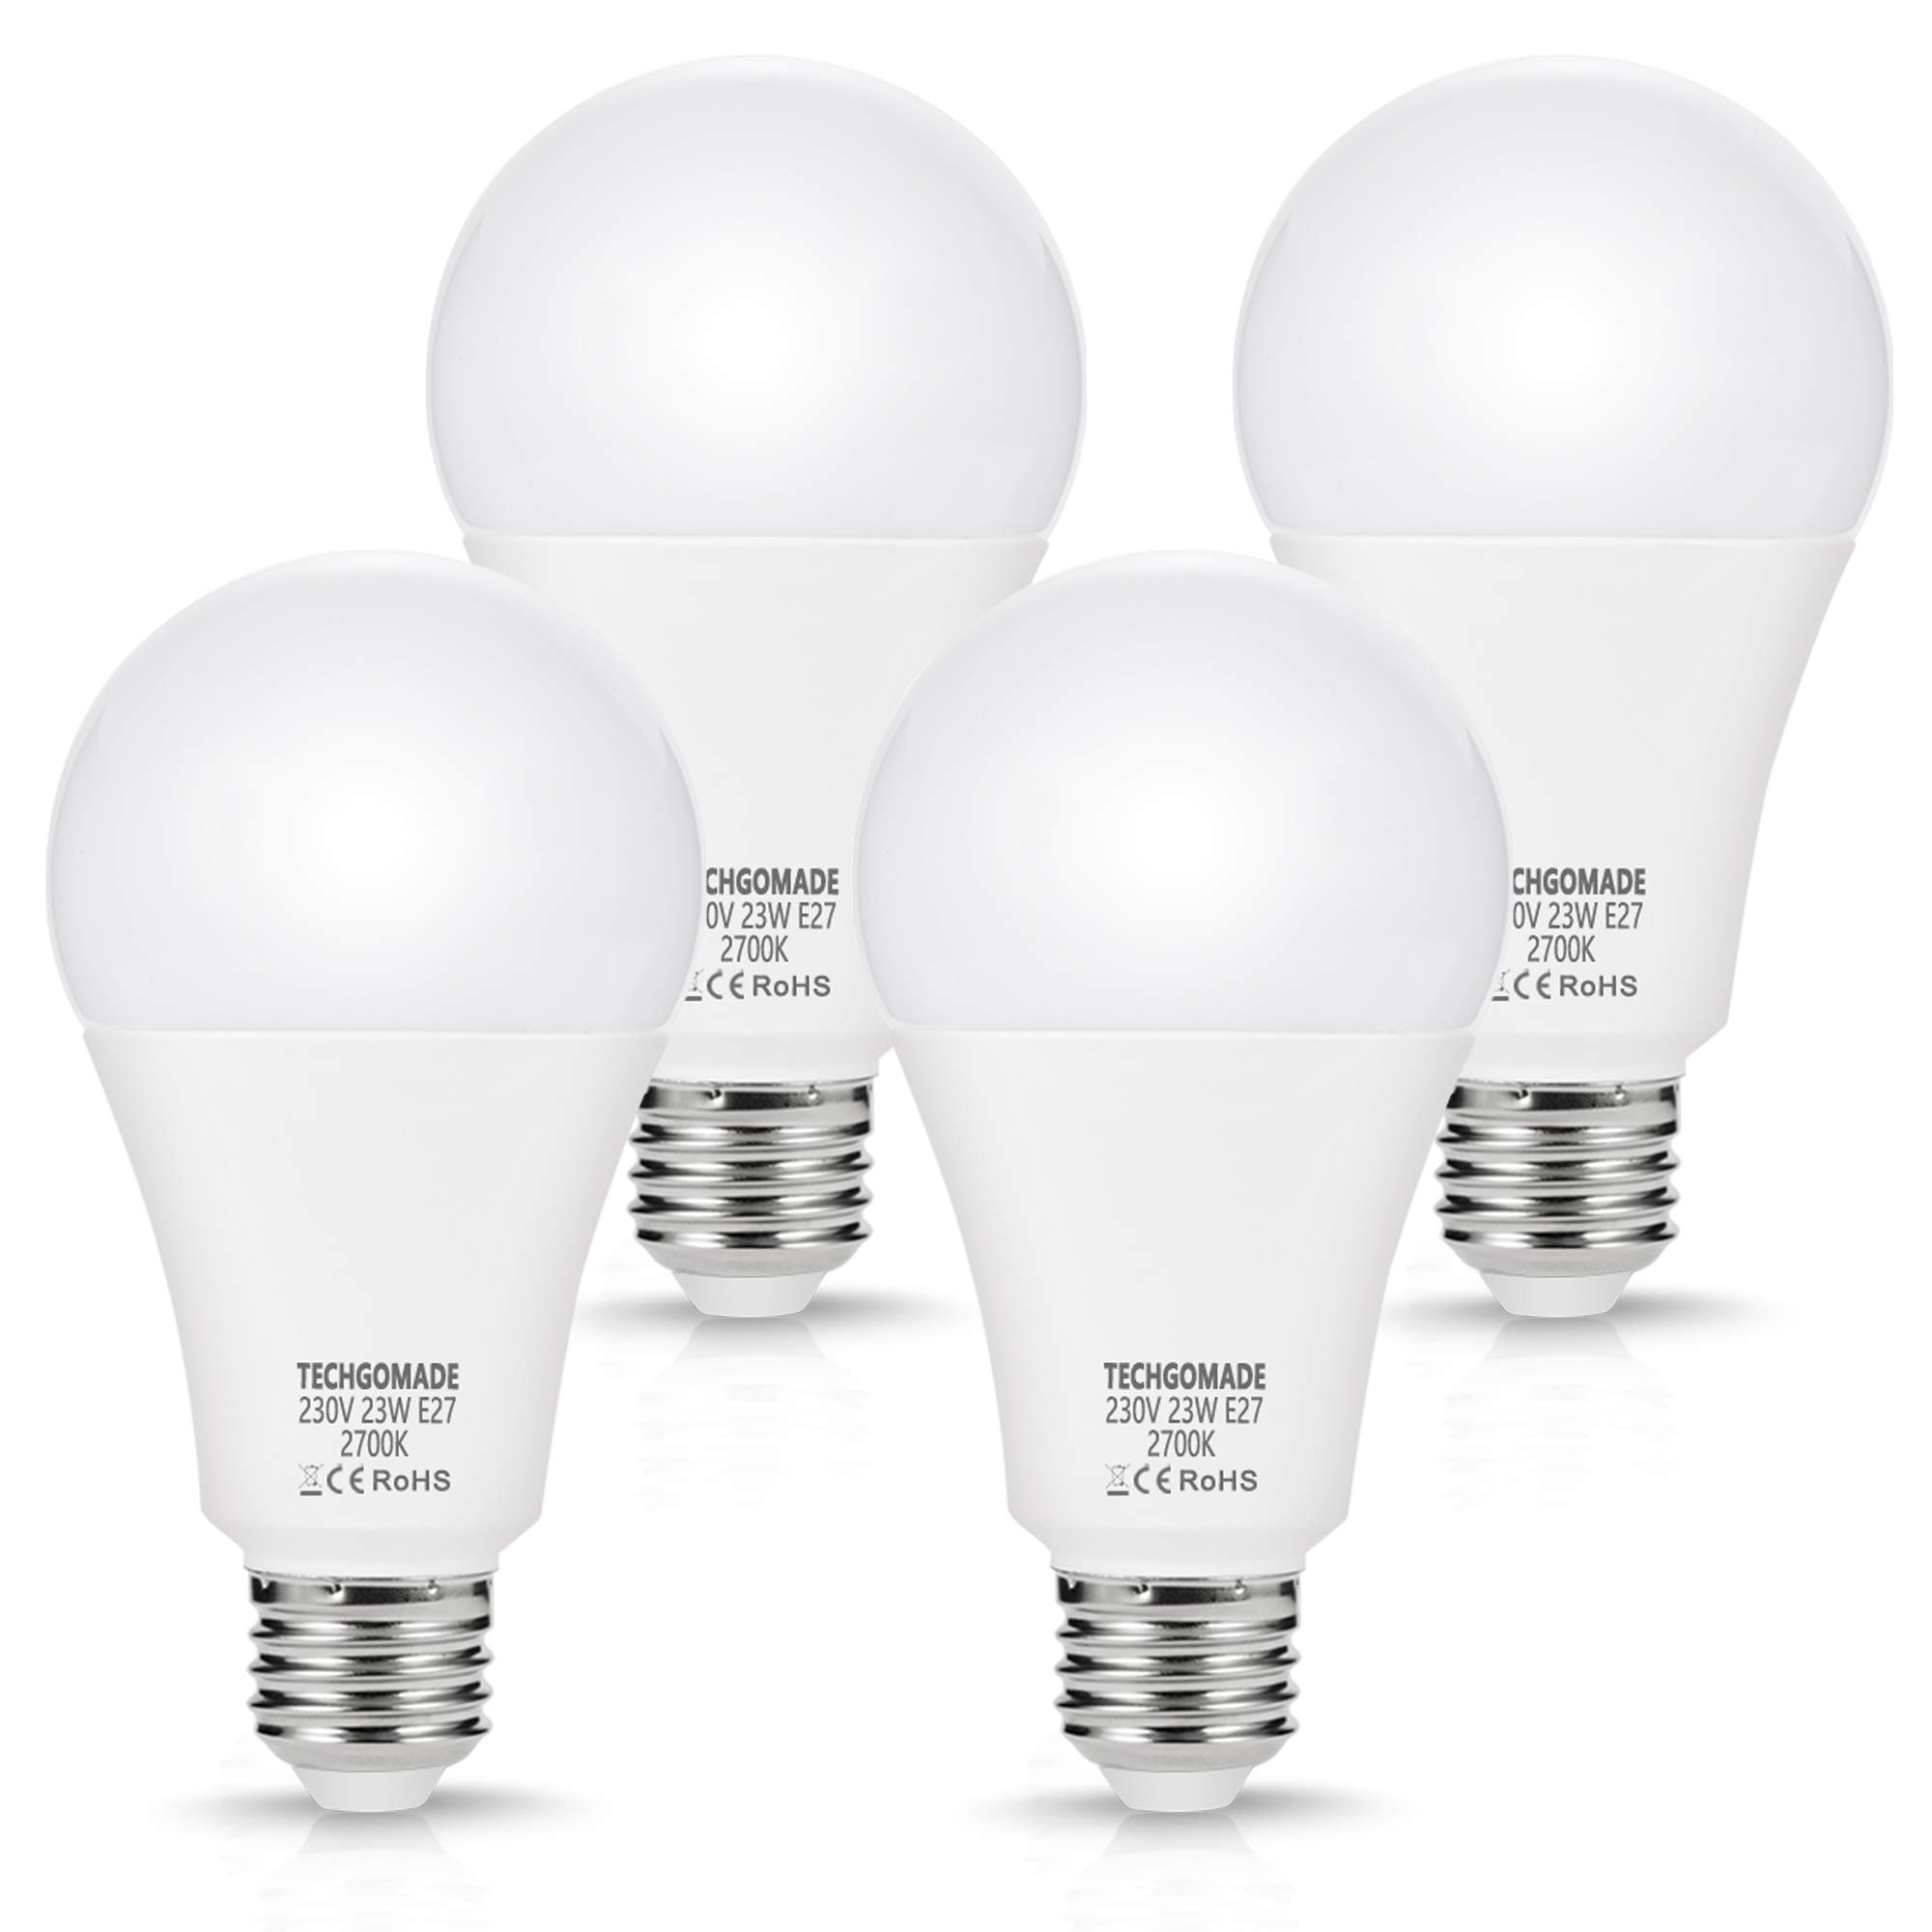 4 X E27 Led Bulbs 23W A65, 2500LM, 200W Equivalent, Edison Screw Light Bulbs, Warm White 2700K, Non-Dimmable, for Garage…